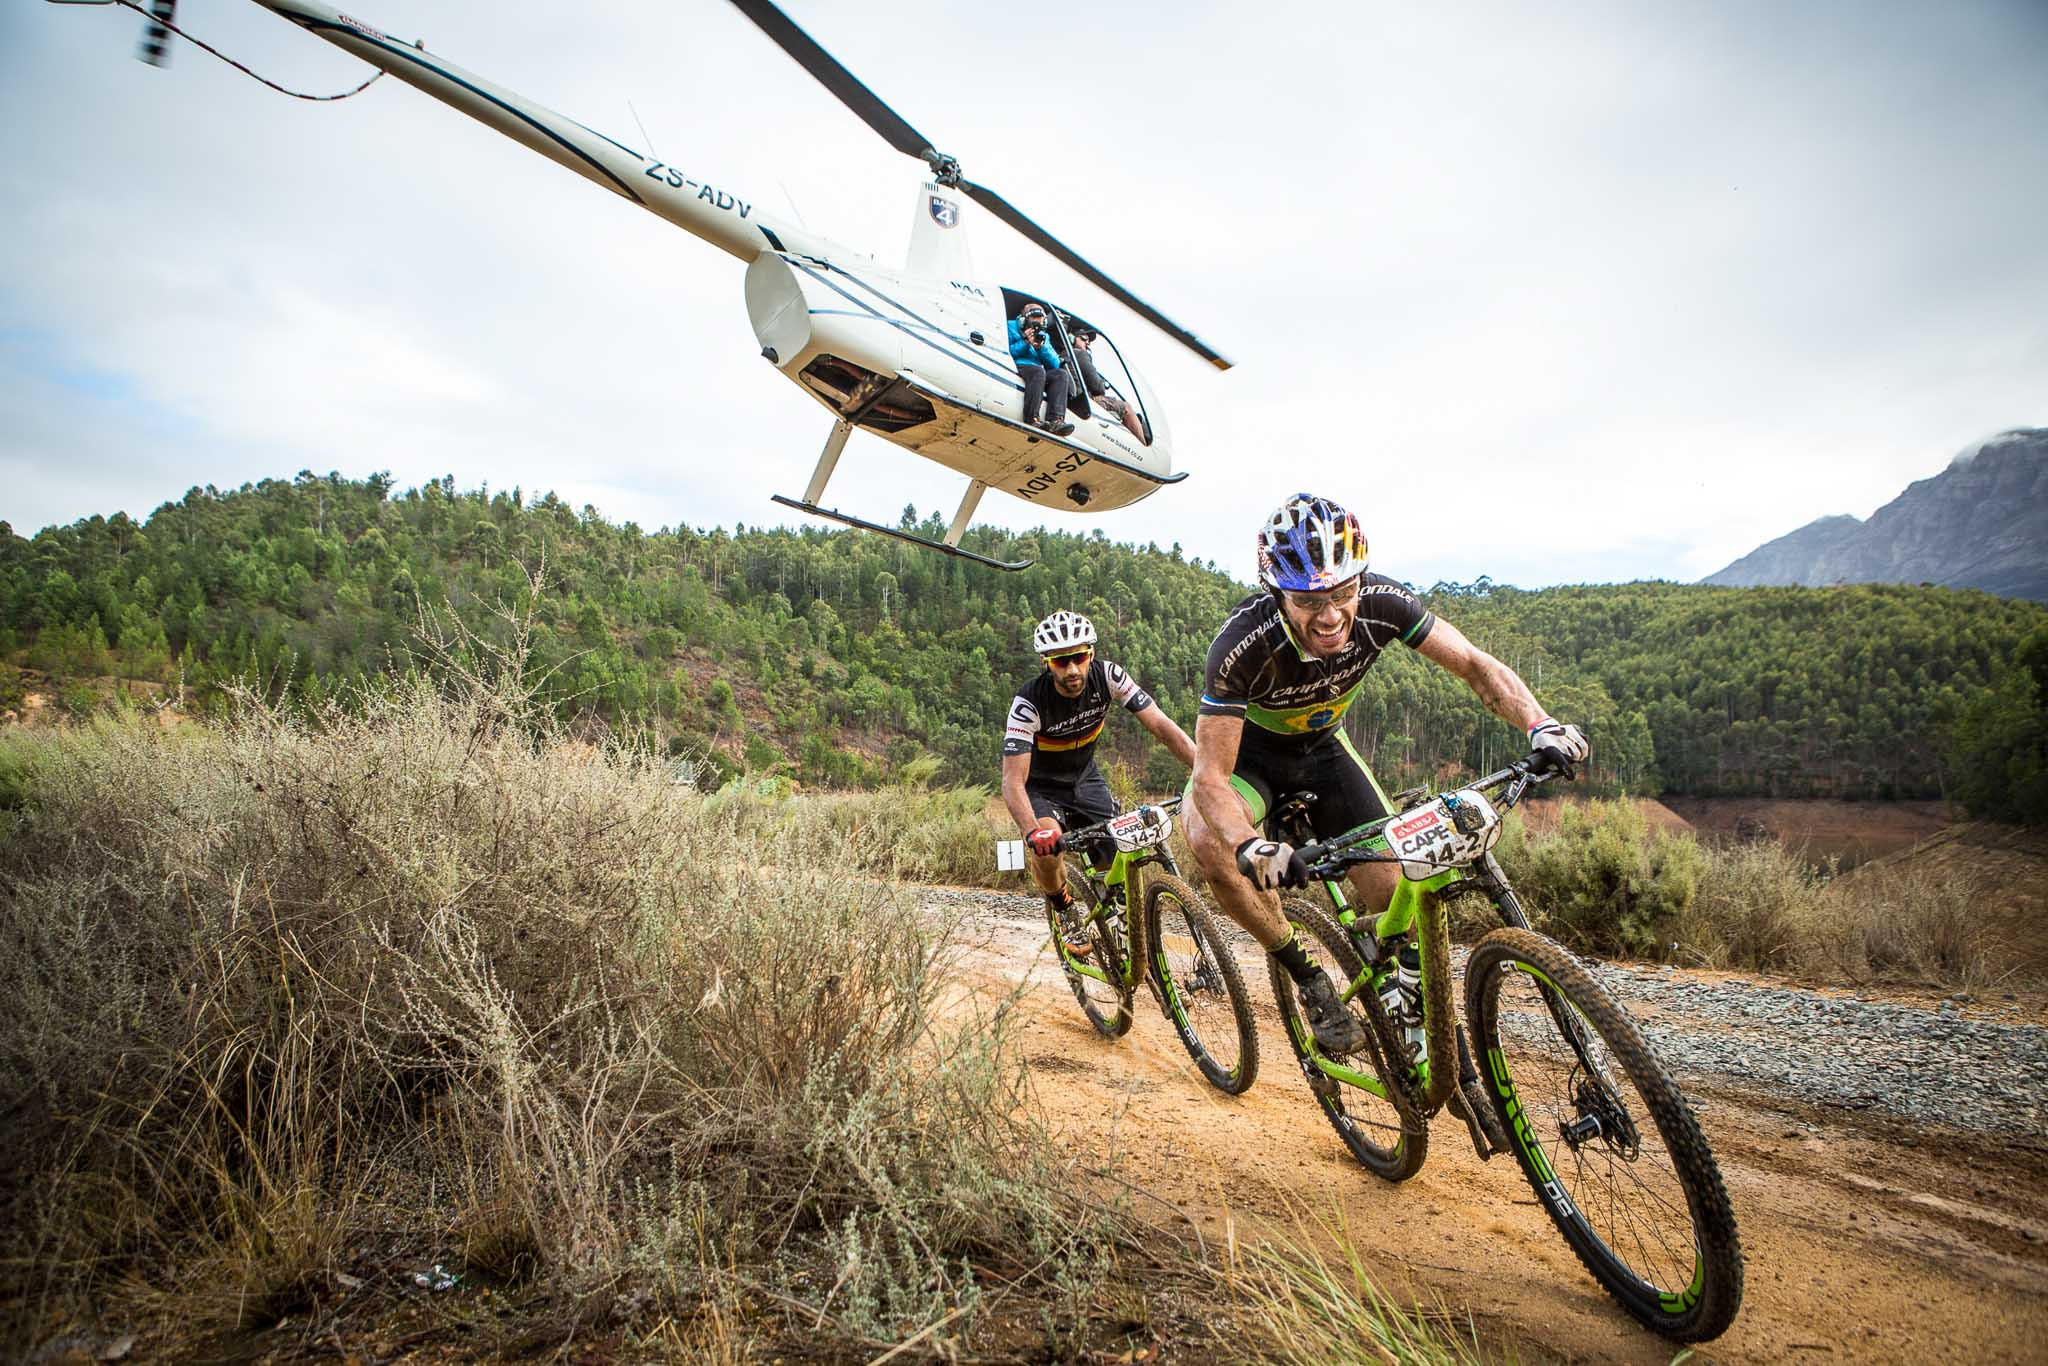 Manuel Fumic and Henrique Avancini of Team Cannondale Factory Racing during stage 6 of the 2016 Absa Cape Epic Mountain Bike stage race from Boschendal in Stellenbosch, South Africa on the 19th March 2015 Photo by Nick Muzik/Cape Epic/SPORTZPICS PLEASE ENSURE THE APPROPRIATE CREDIT IS GIVEN TO THE PHOTOGRAPHER AND SPORTZPICS ALONG WITH THE ABSA CAPE EPIC ace2016